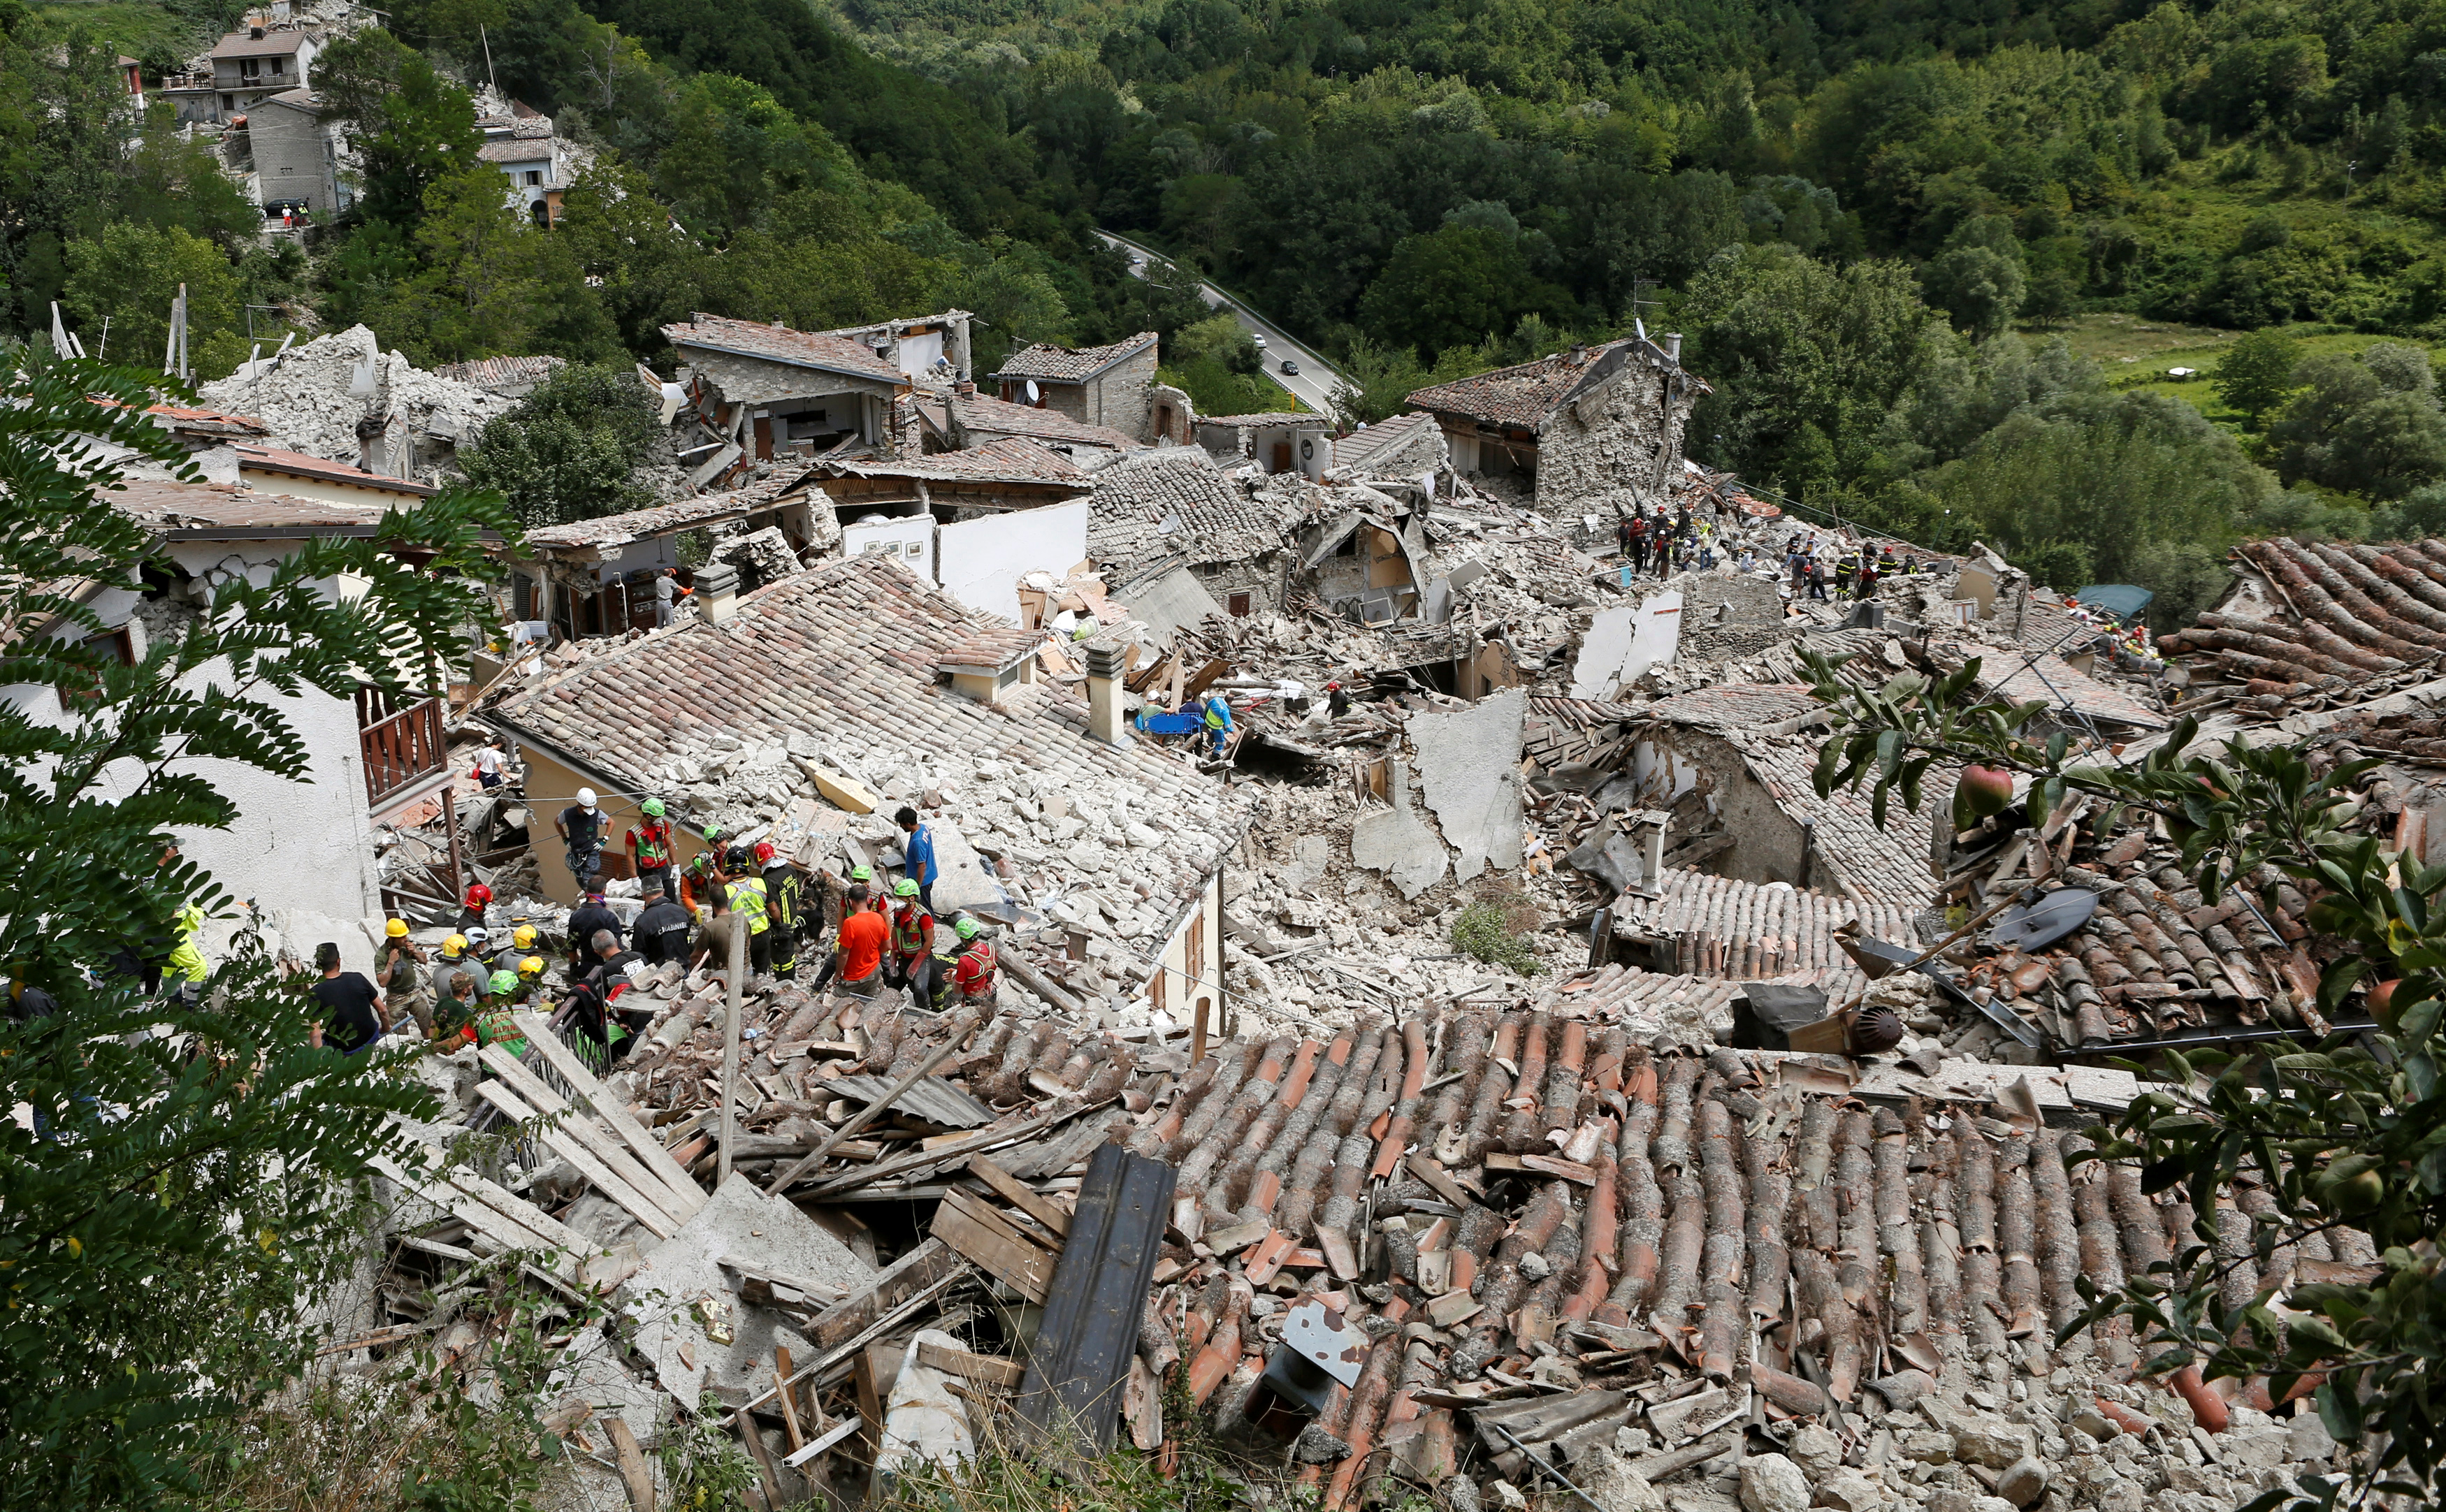 Rescuers work to free people from the rubble in Pescara del Tronto in central Italy on Wednesday. Photo by Remo Casilli/Reuters